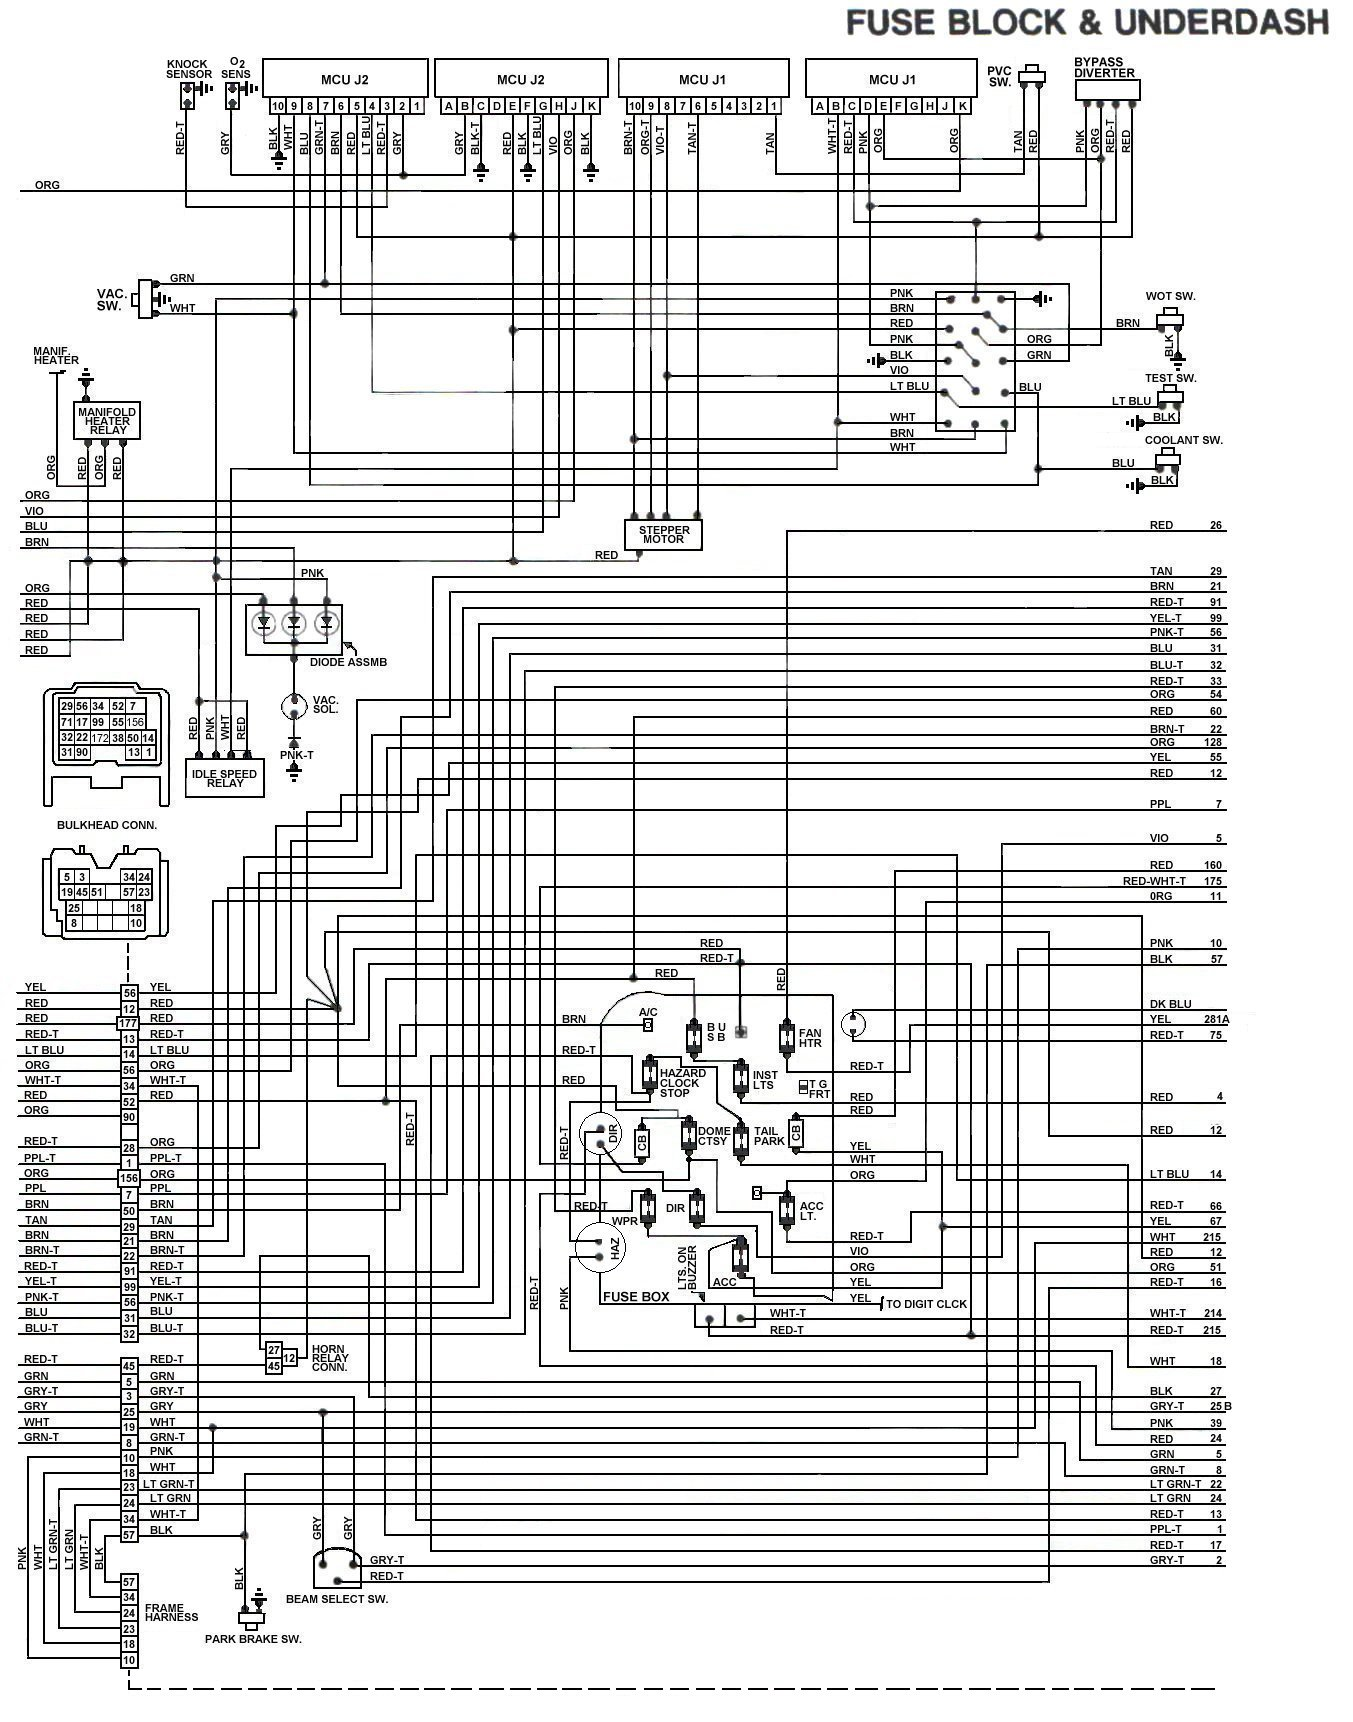 83_FSJ_WiringDiagram_FuseBlock Underdash tom 'oljeep' collins fsj wiring page  at panicattacktreatment.co